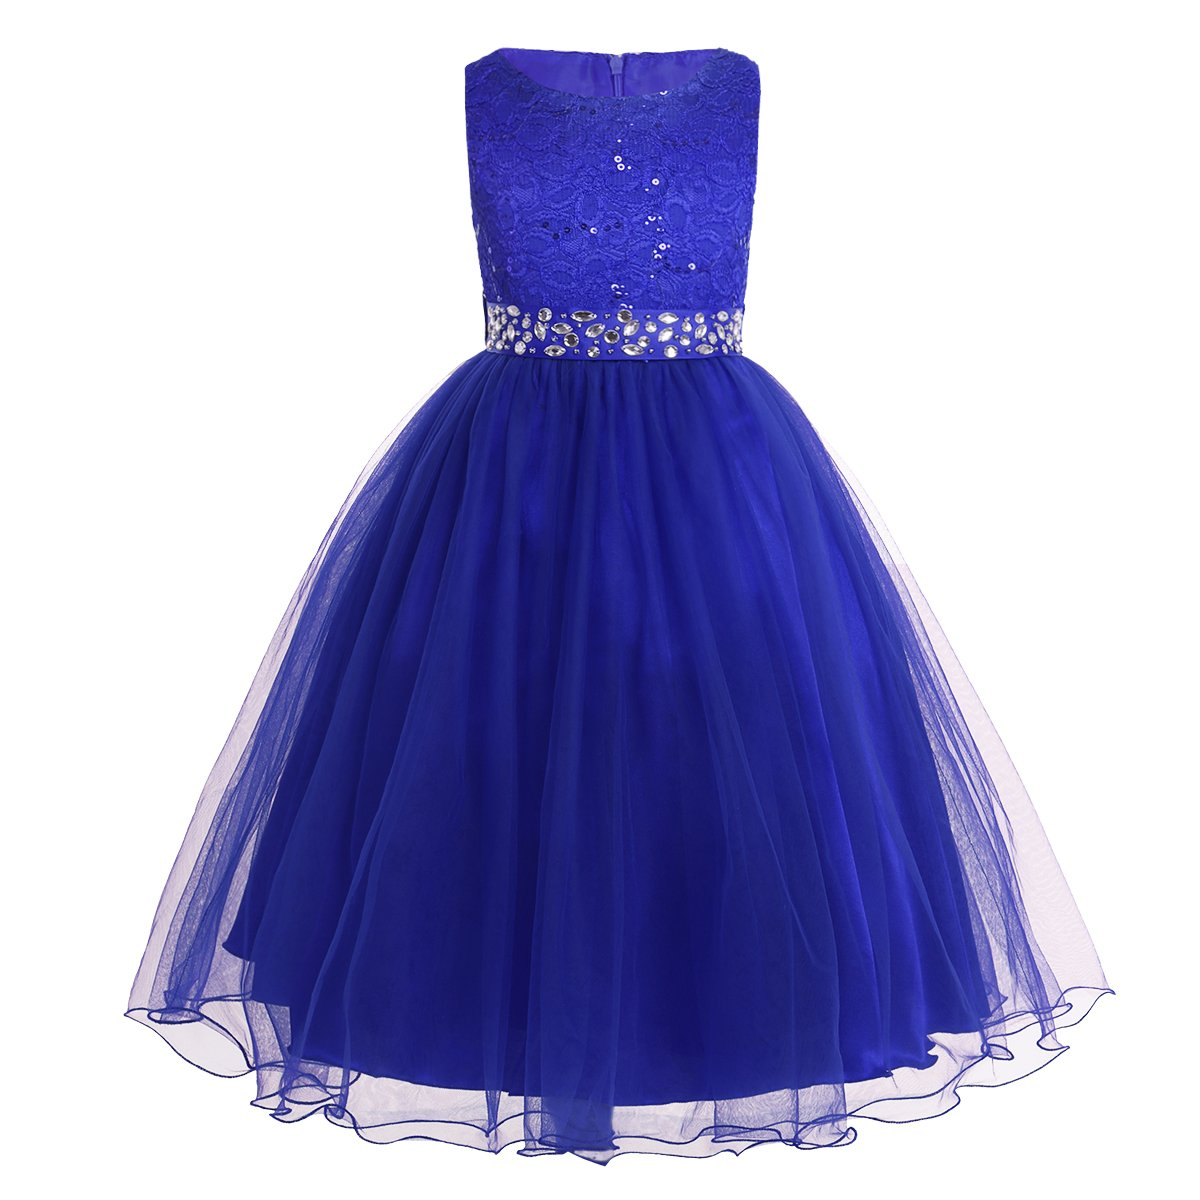 YiZYiF Kids Sequins Rhinestone Belt/Embroideried Communion Pageant Wedding Party Flower Girls Dresses Royal Blue 14